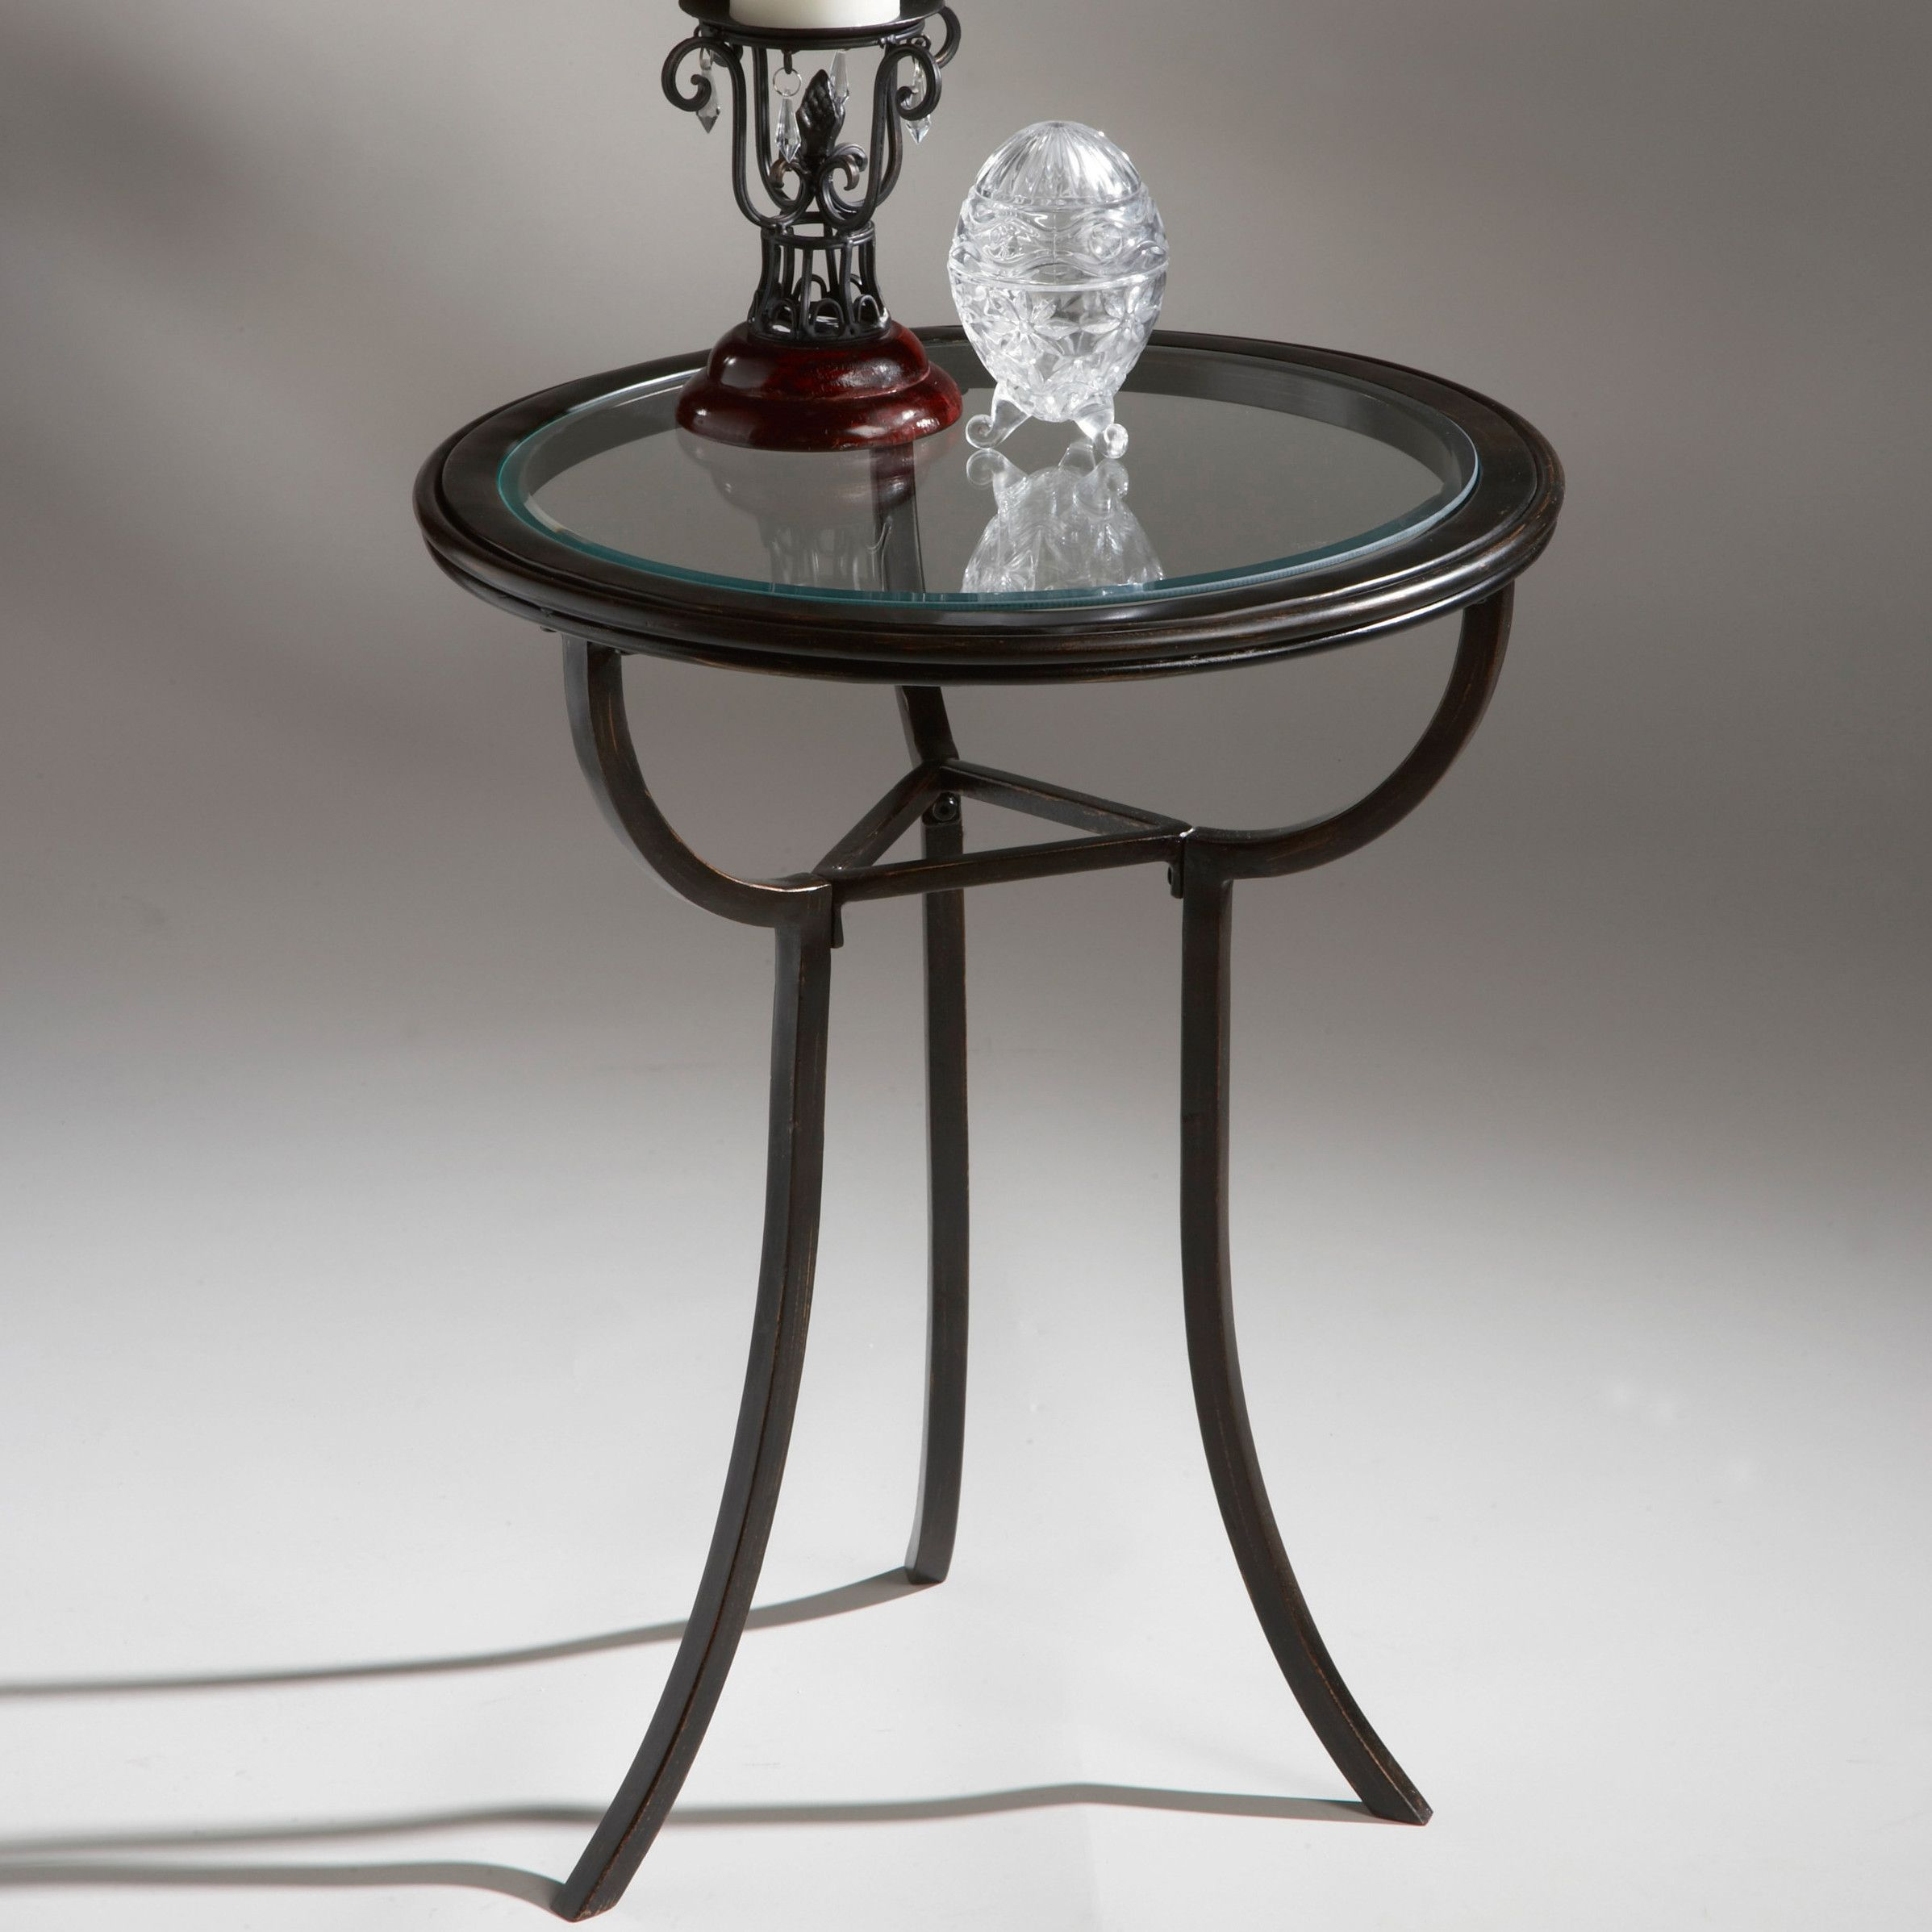 metal accent table with glass top end tables round iron kmart kids garden coffee set design plans teal kitchen decor pottery barn bar timber trestle legs pewter side target nate